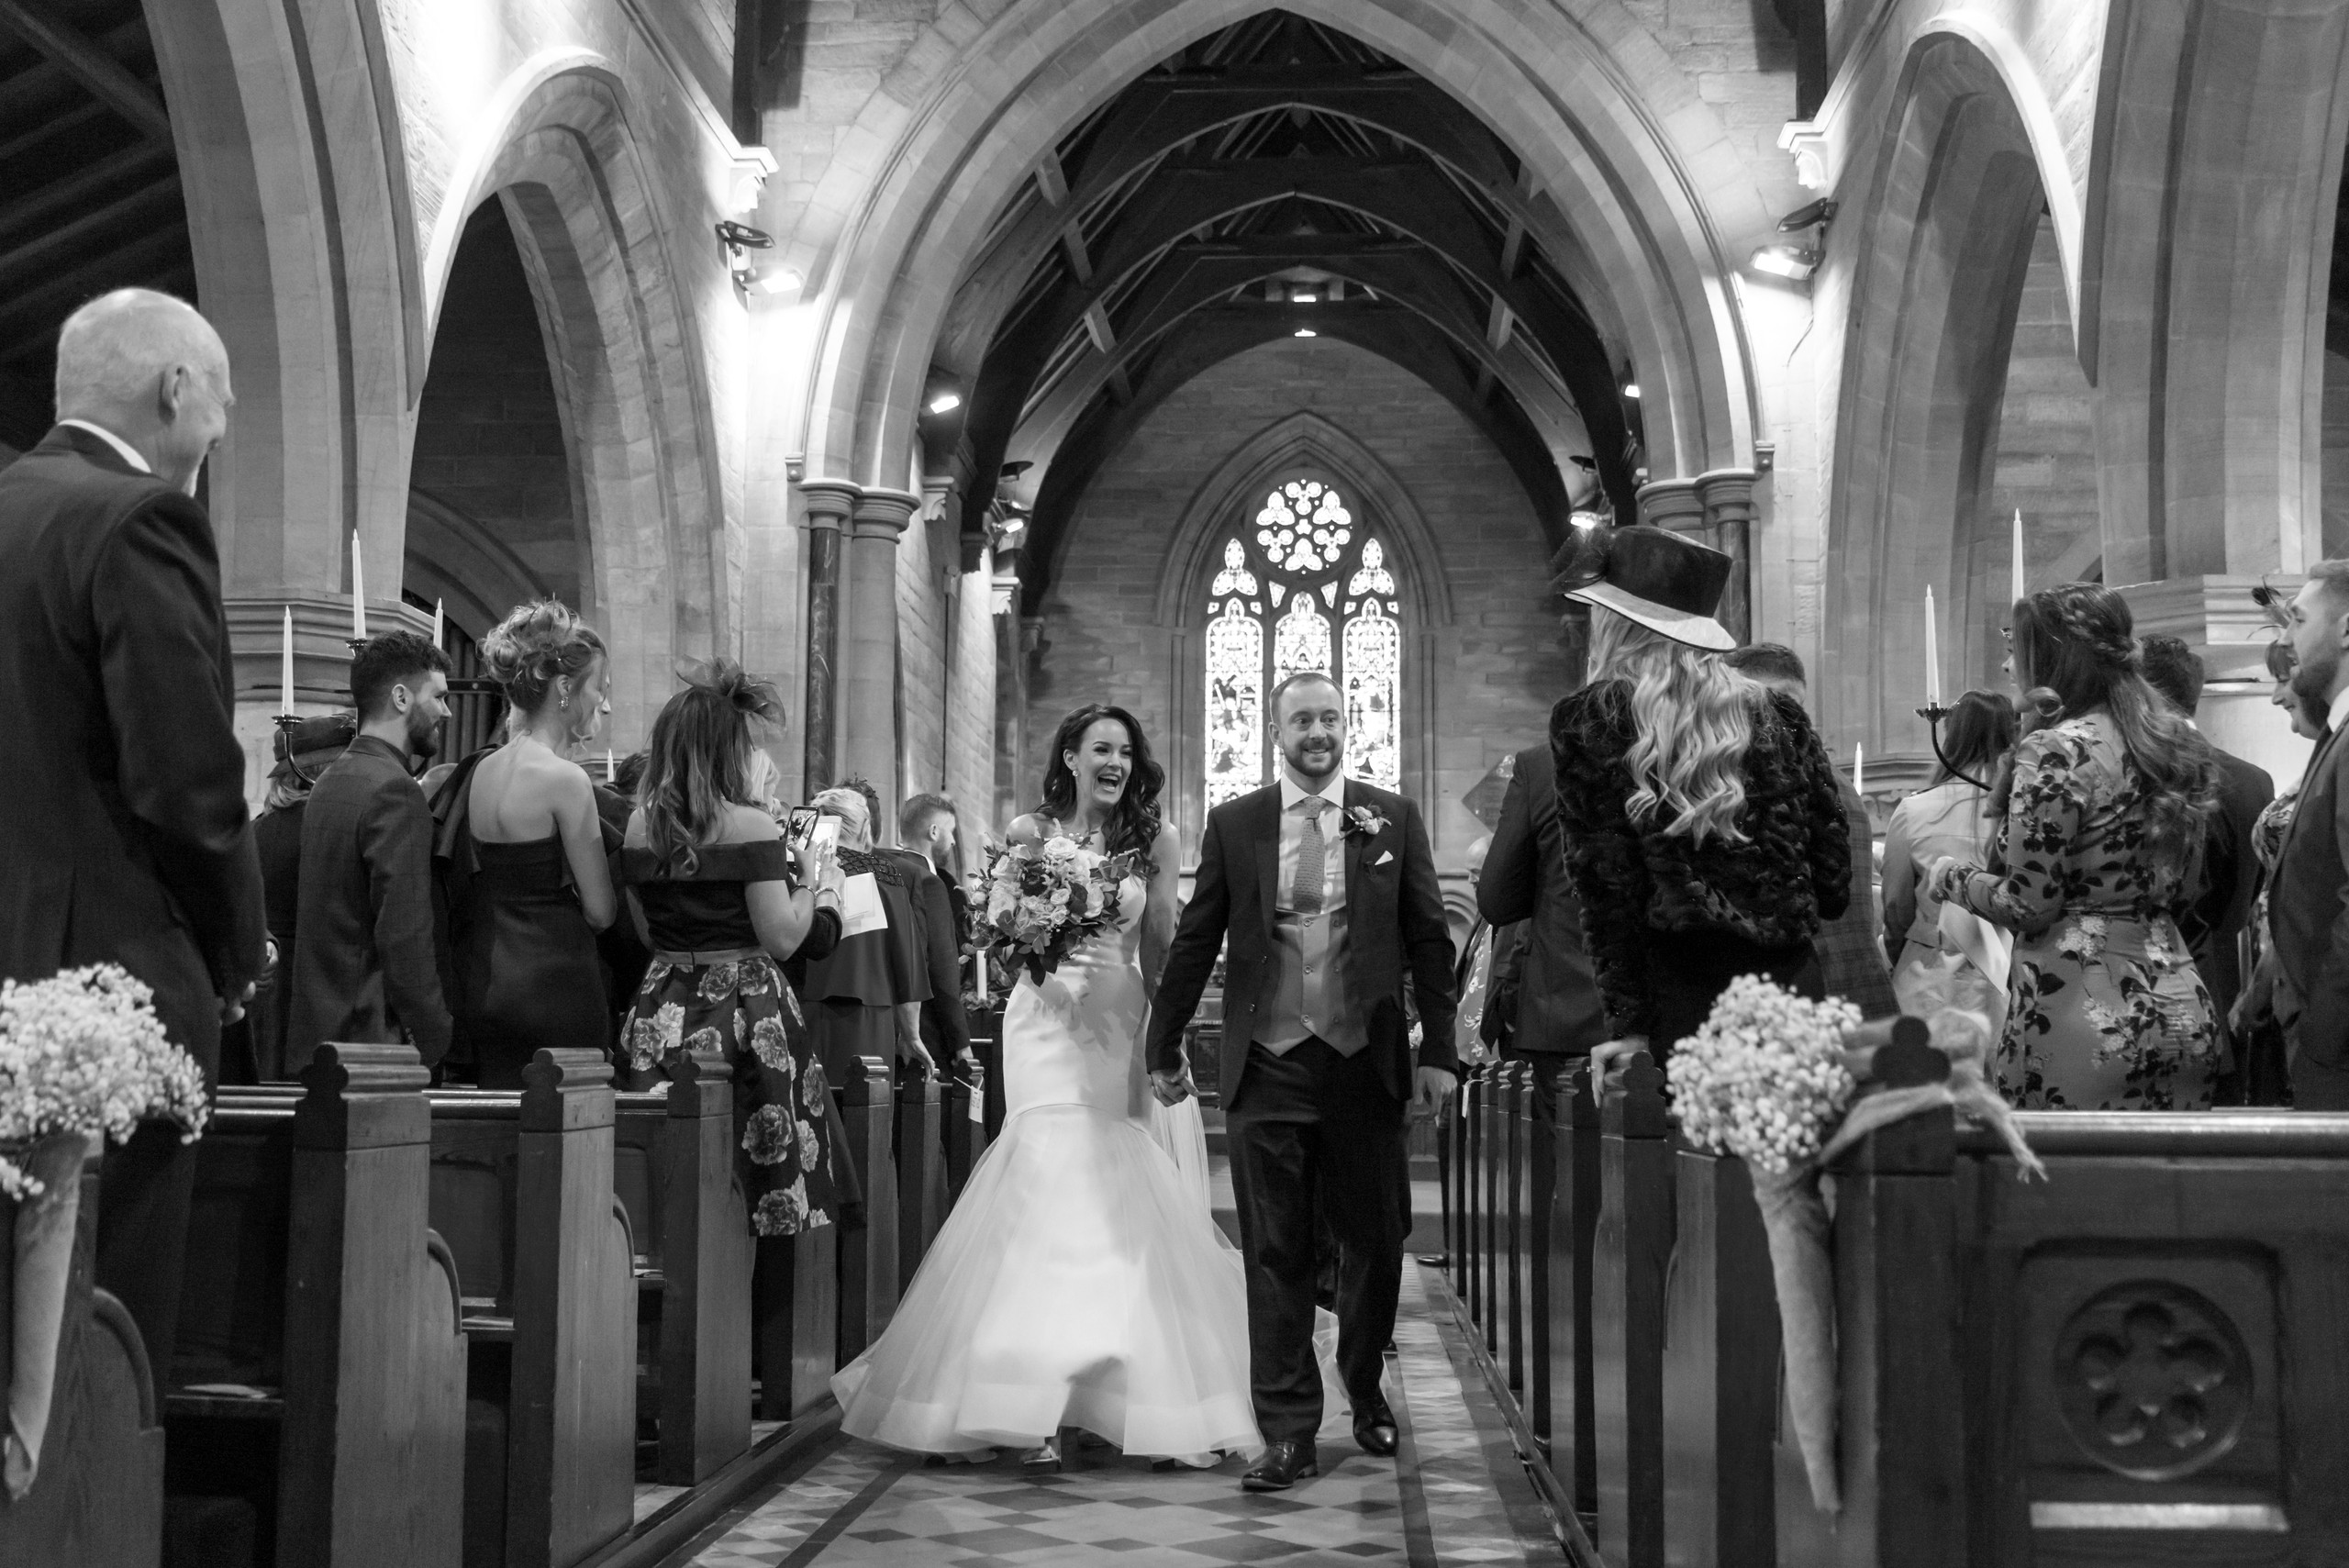 Relaxed and smiling bride and groom walking down the aisle after intimate church ceremony